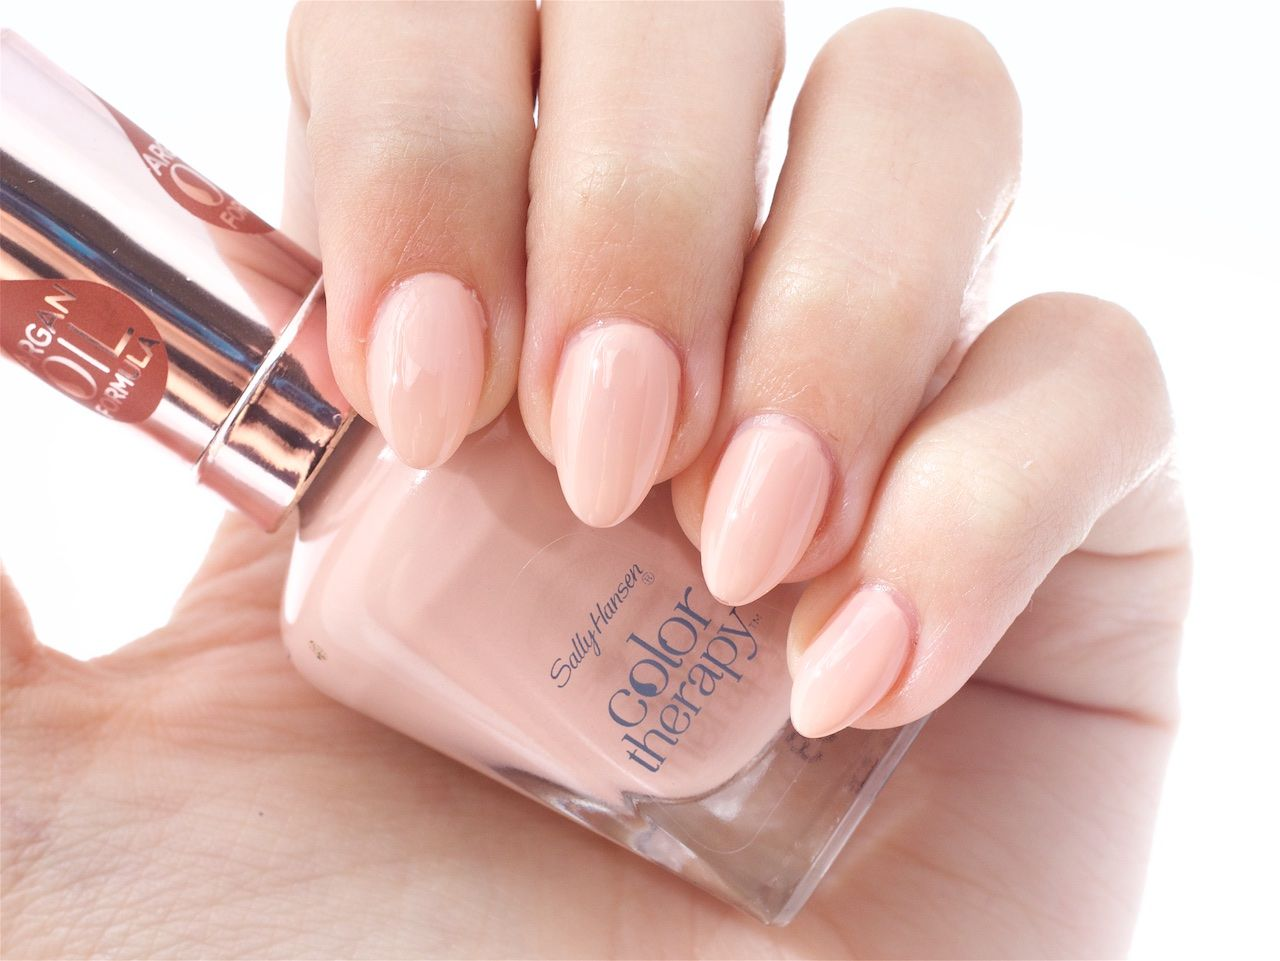 Colour therapy for beauty - Sally Hansen Color Therapy In Re Nude